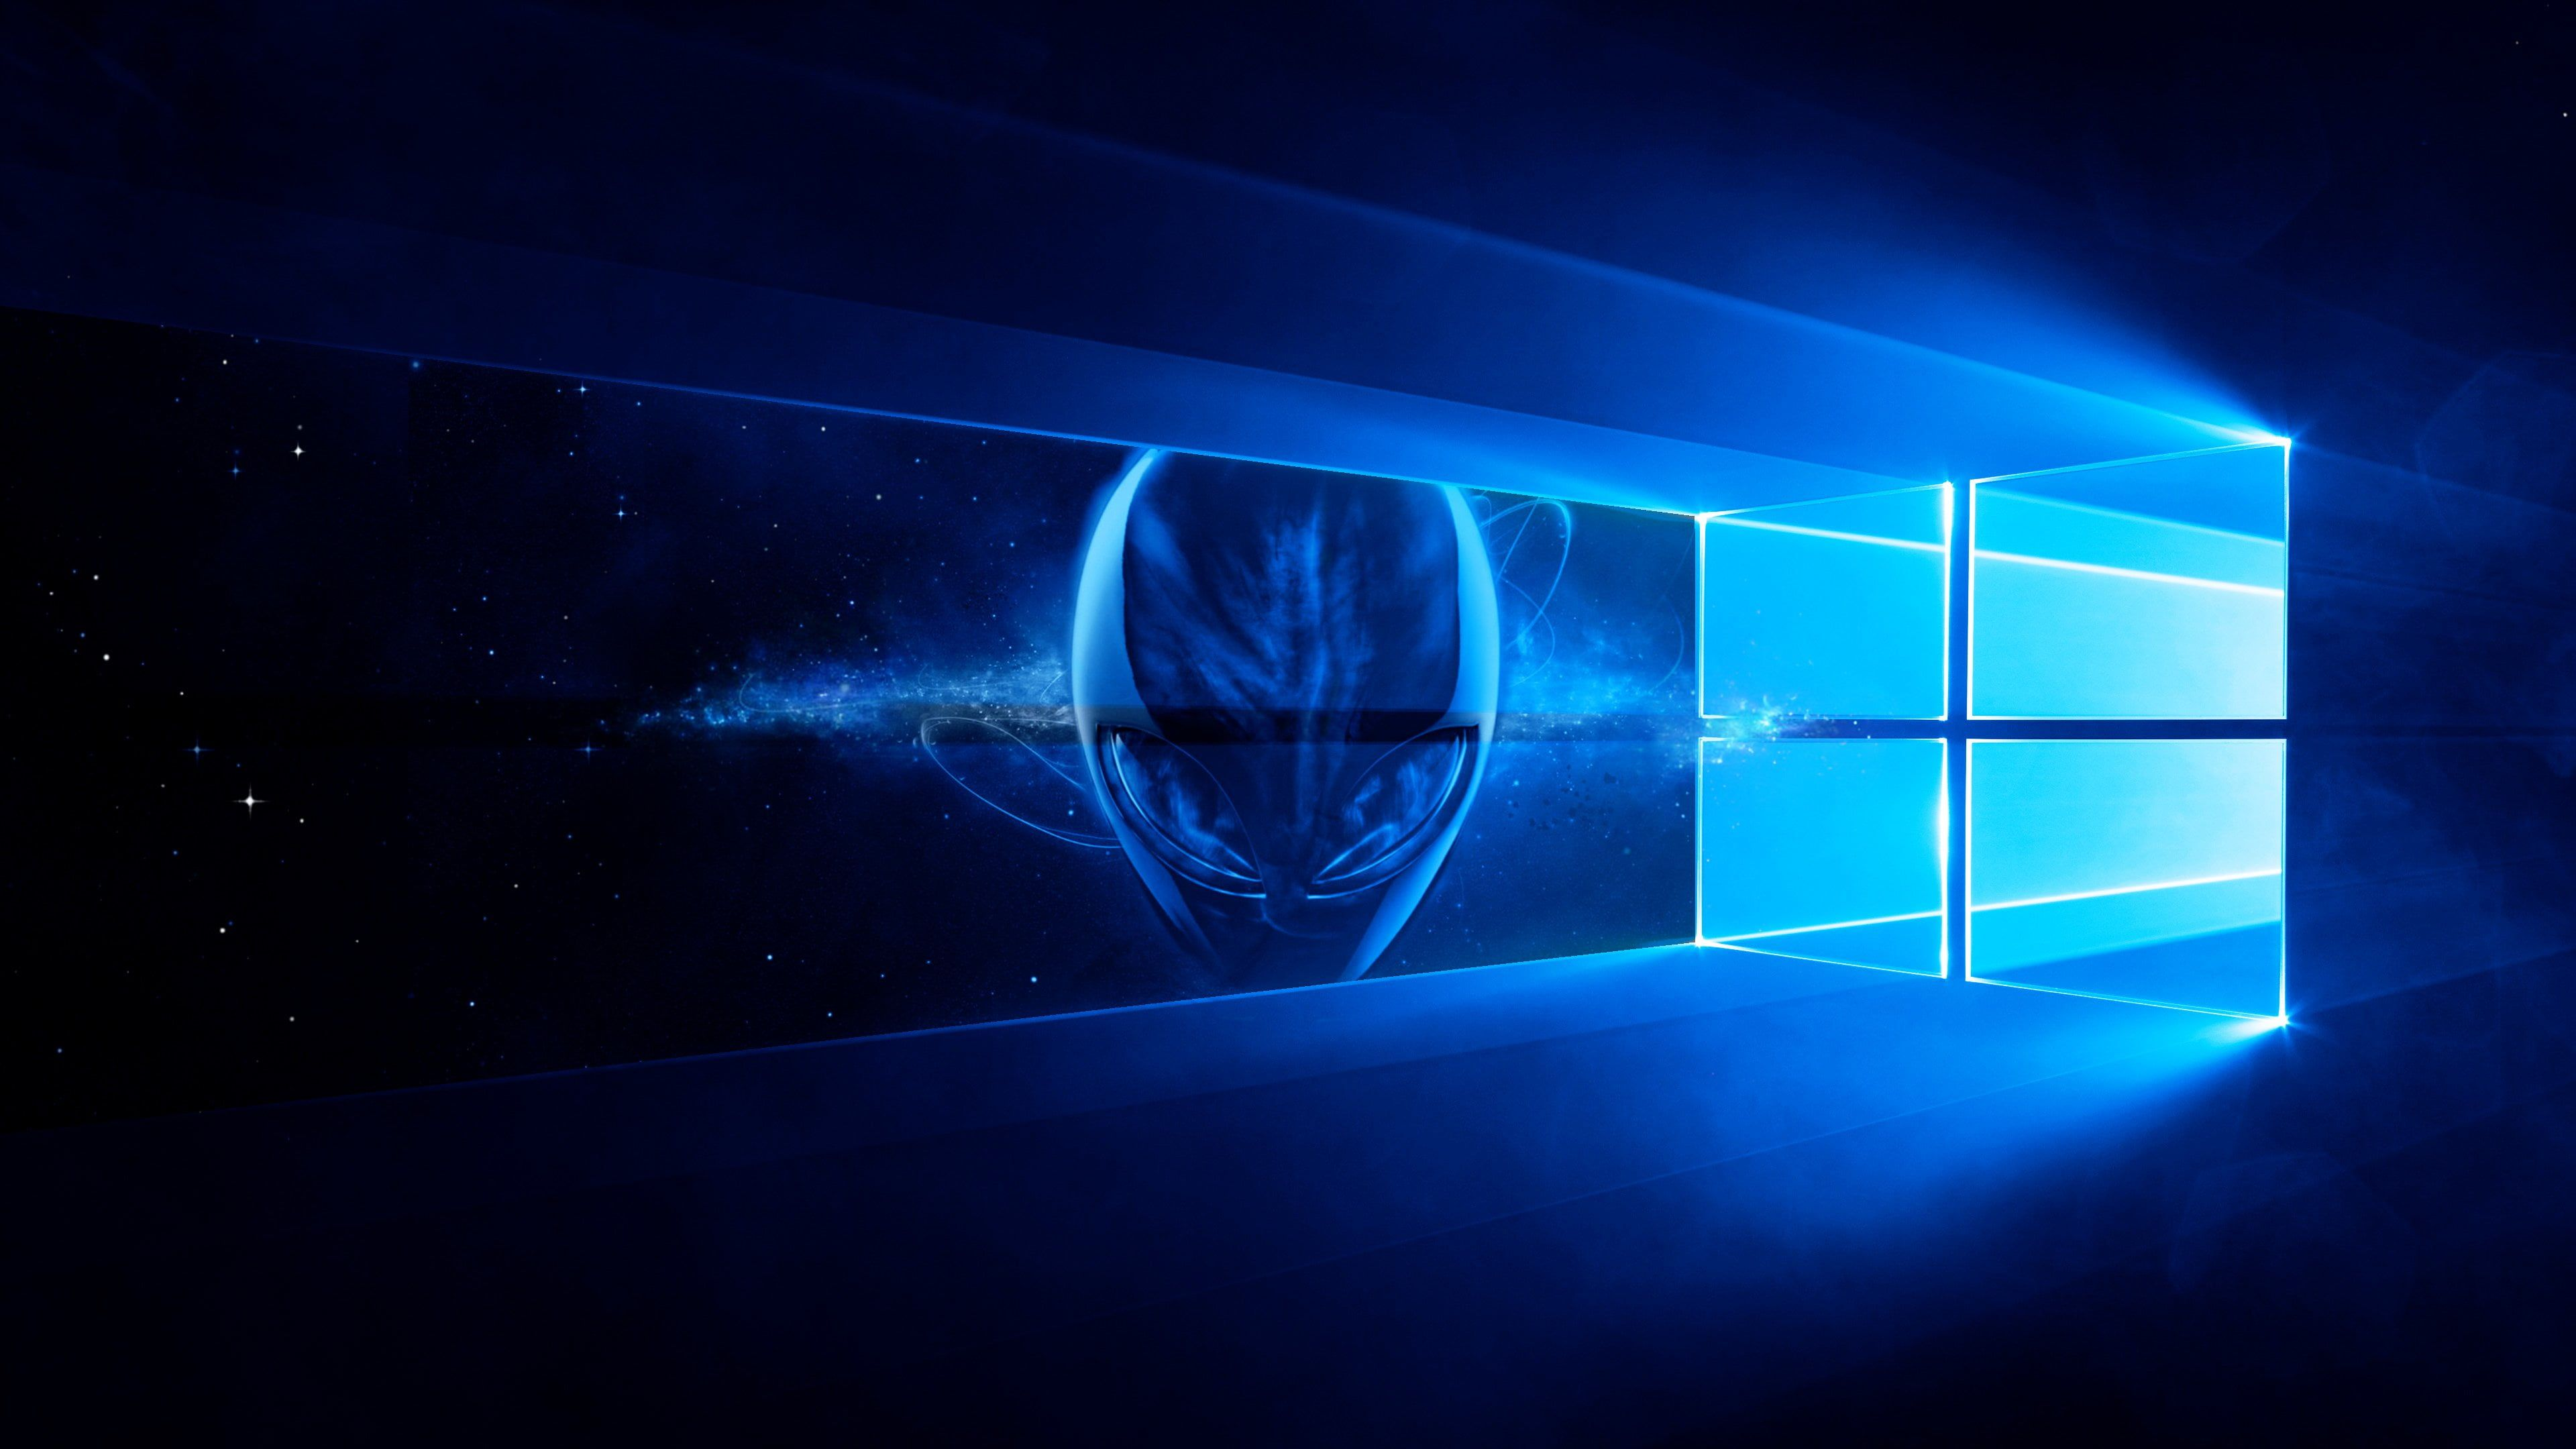 Alienware Computer Windows 10 Hd 4k 4k Wallpaper Hdwallpaper Desktop In 2020 Alienware Technology Wallpaper Wallpaper